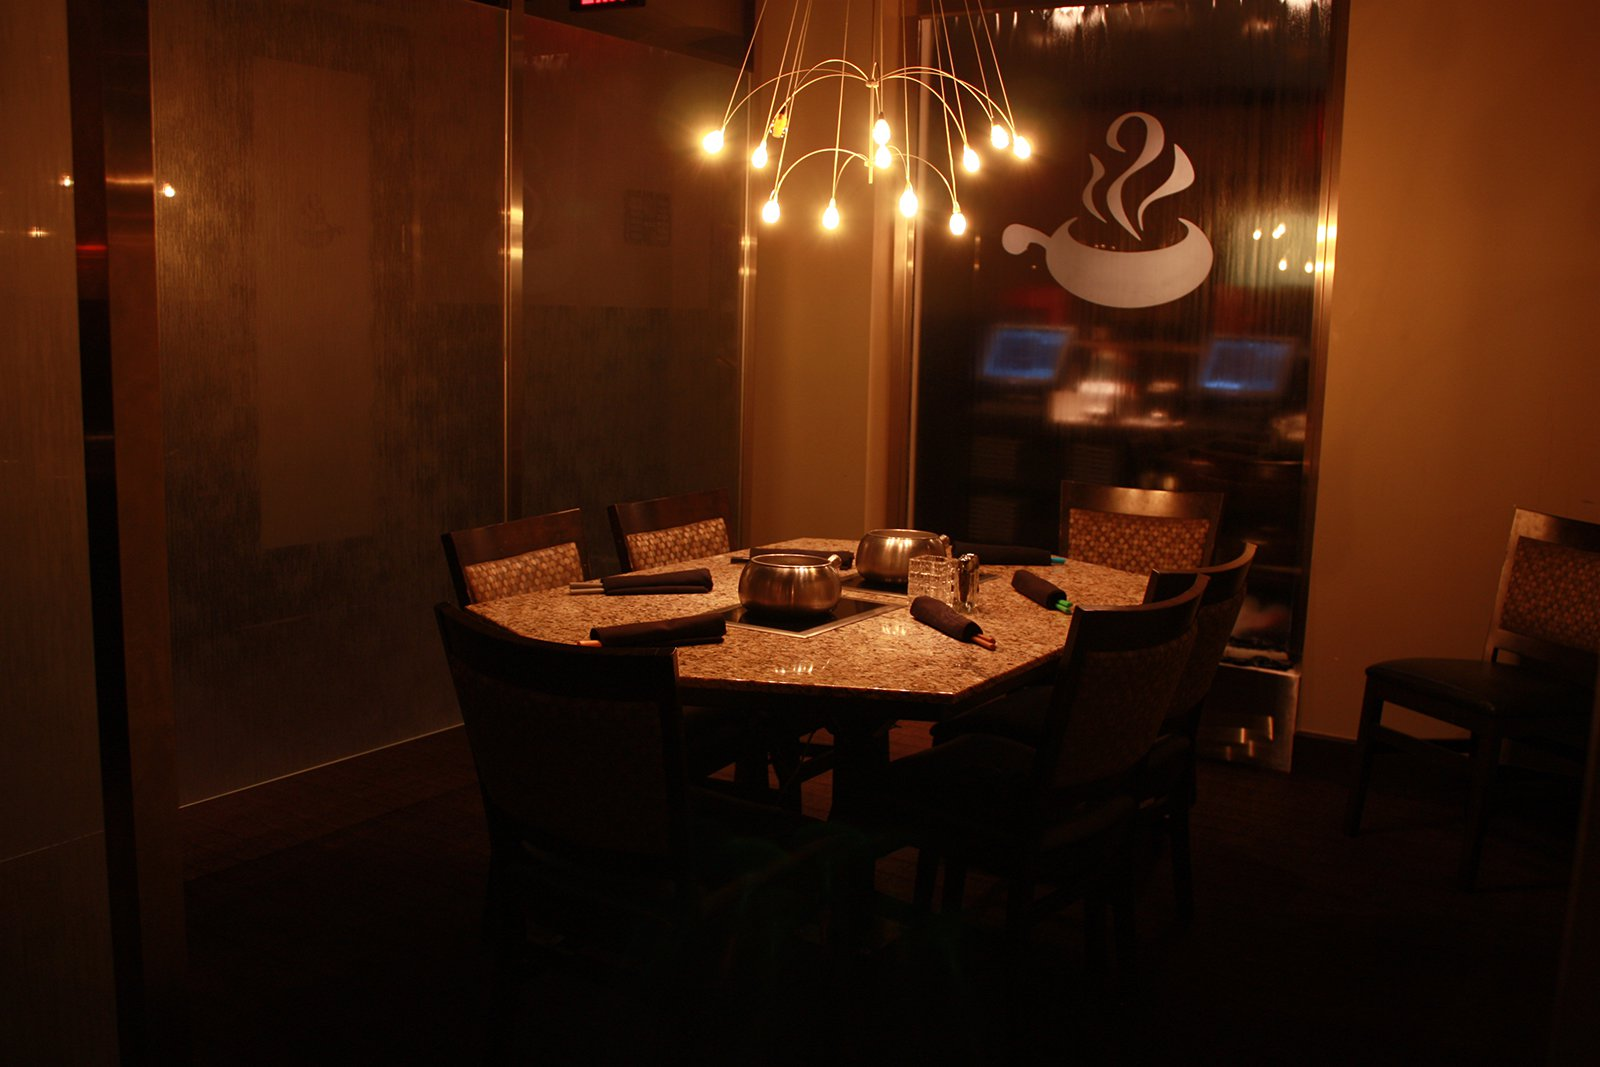 The Melting Pot Events and Specials in White Plains, NY